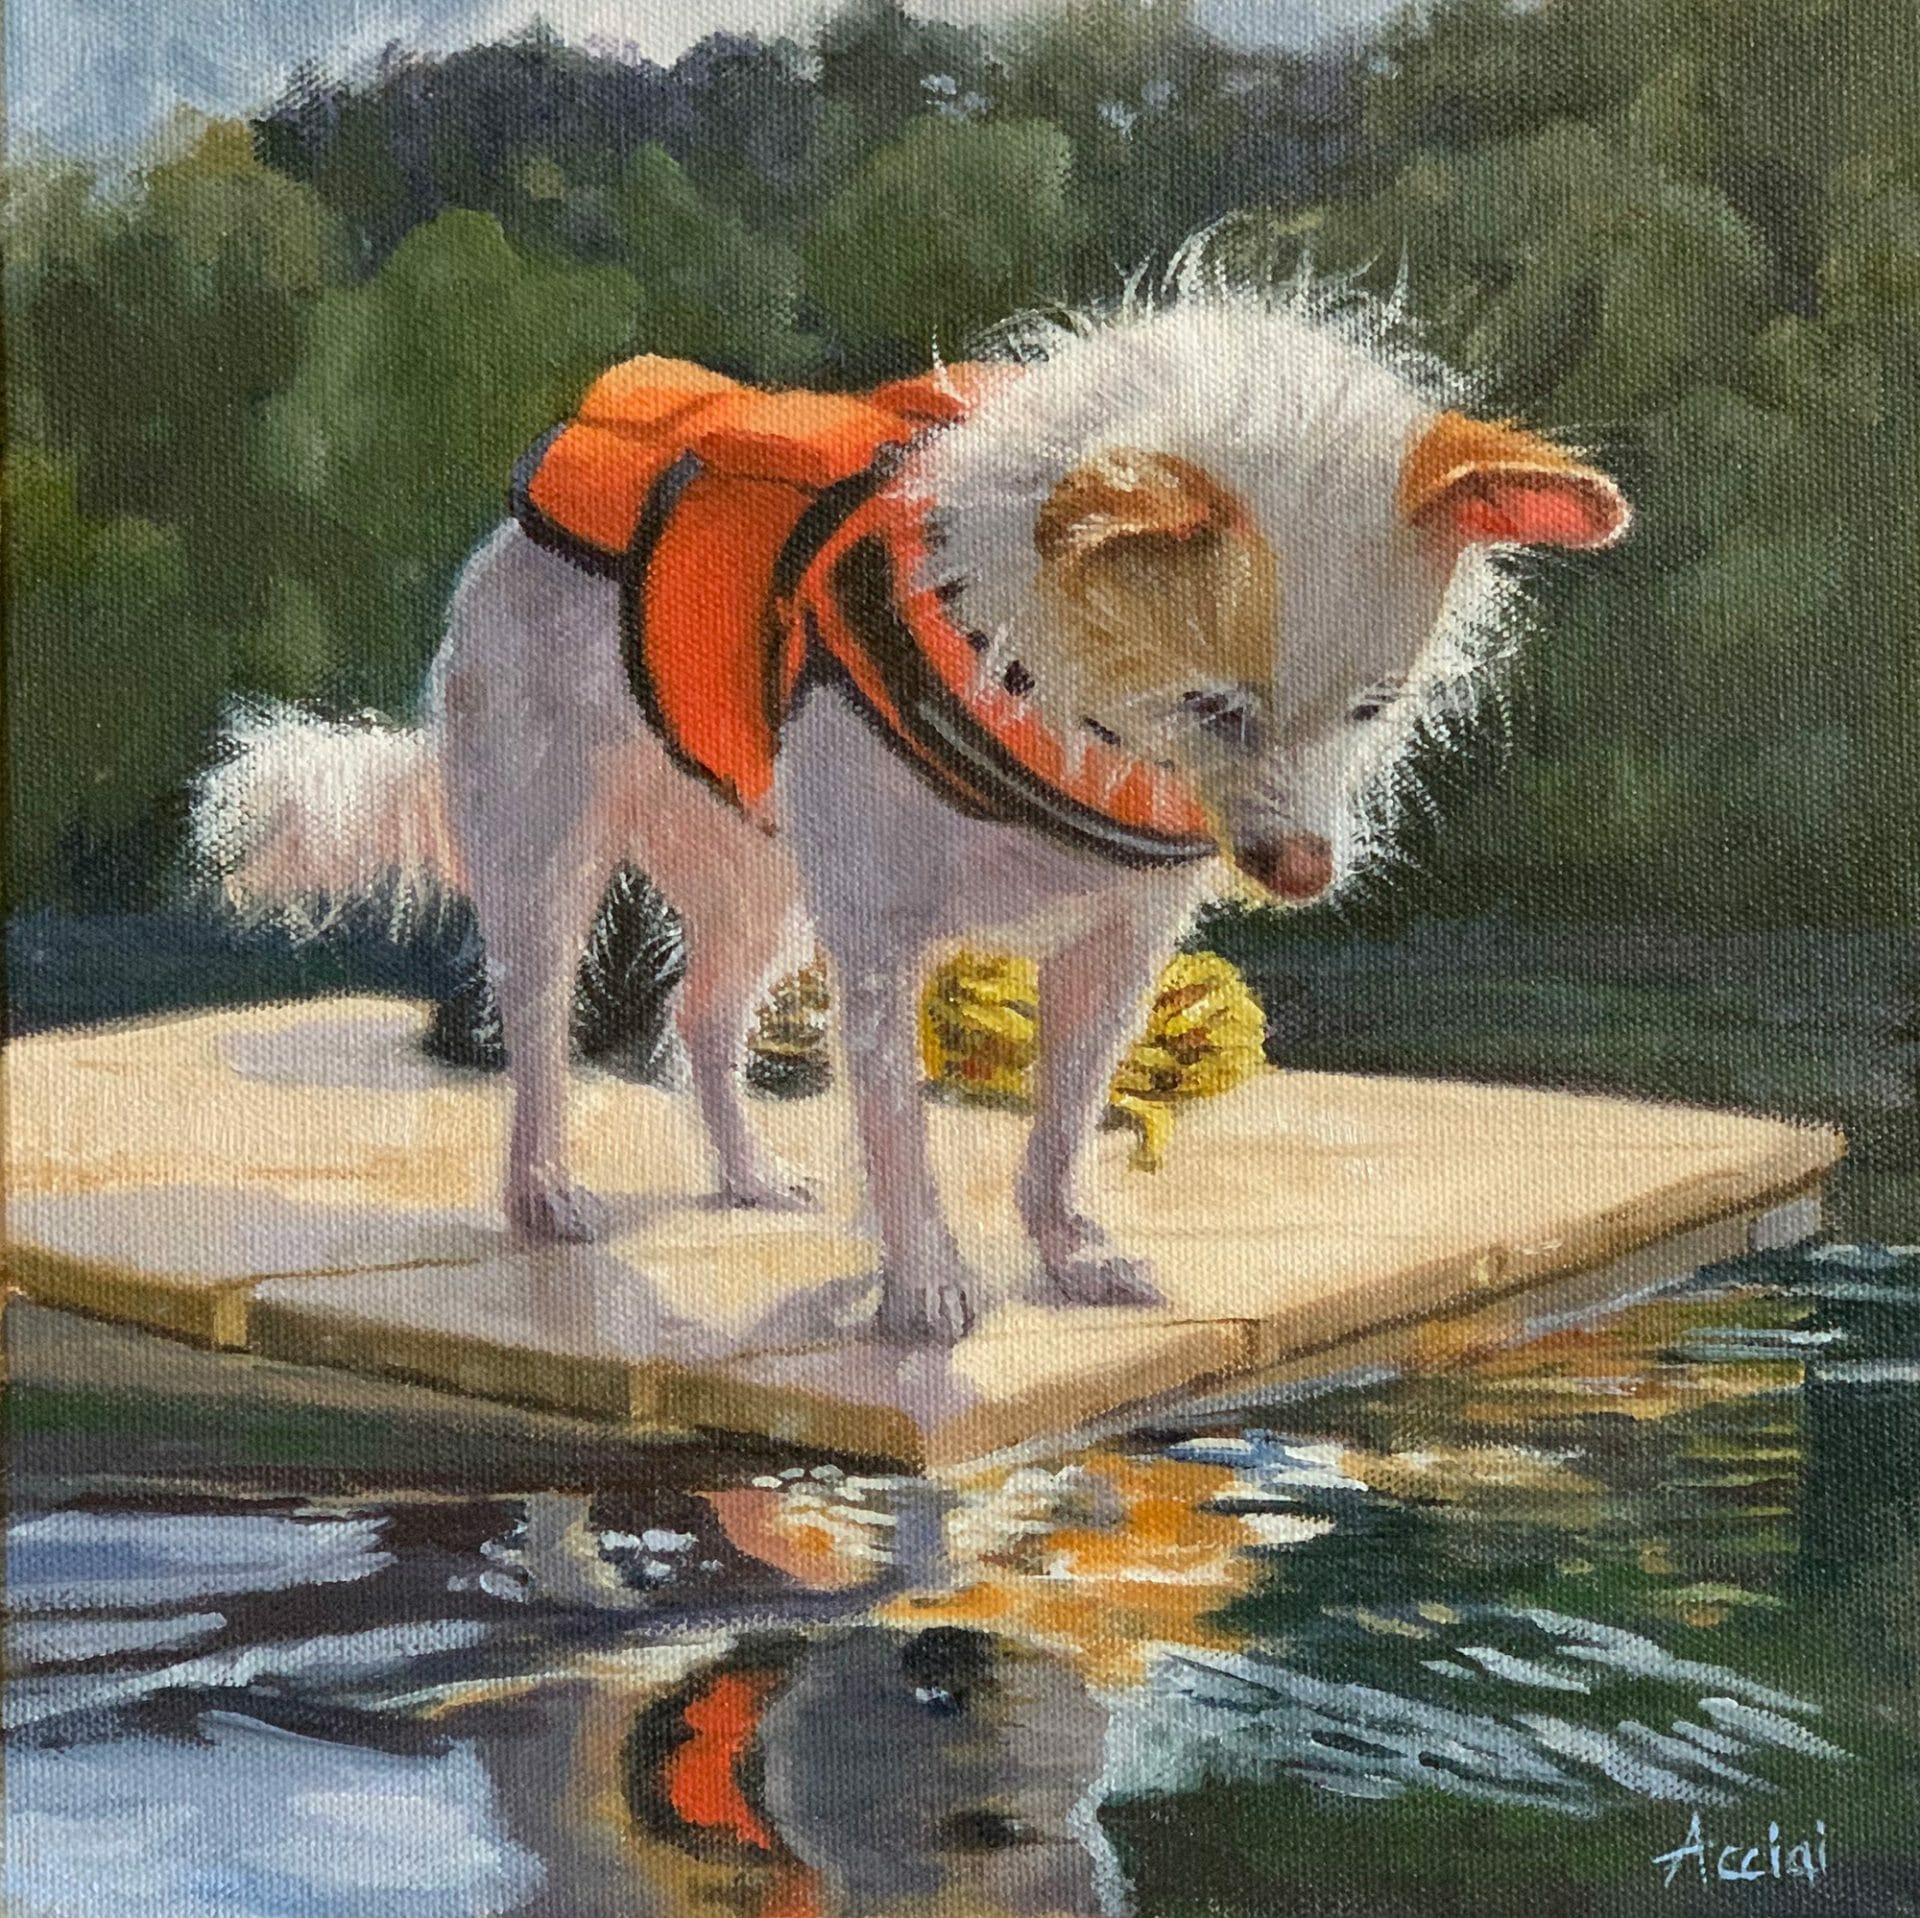 Ziggy, Terrier mix, oil painting by Lisa Acciai